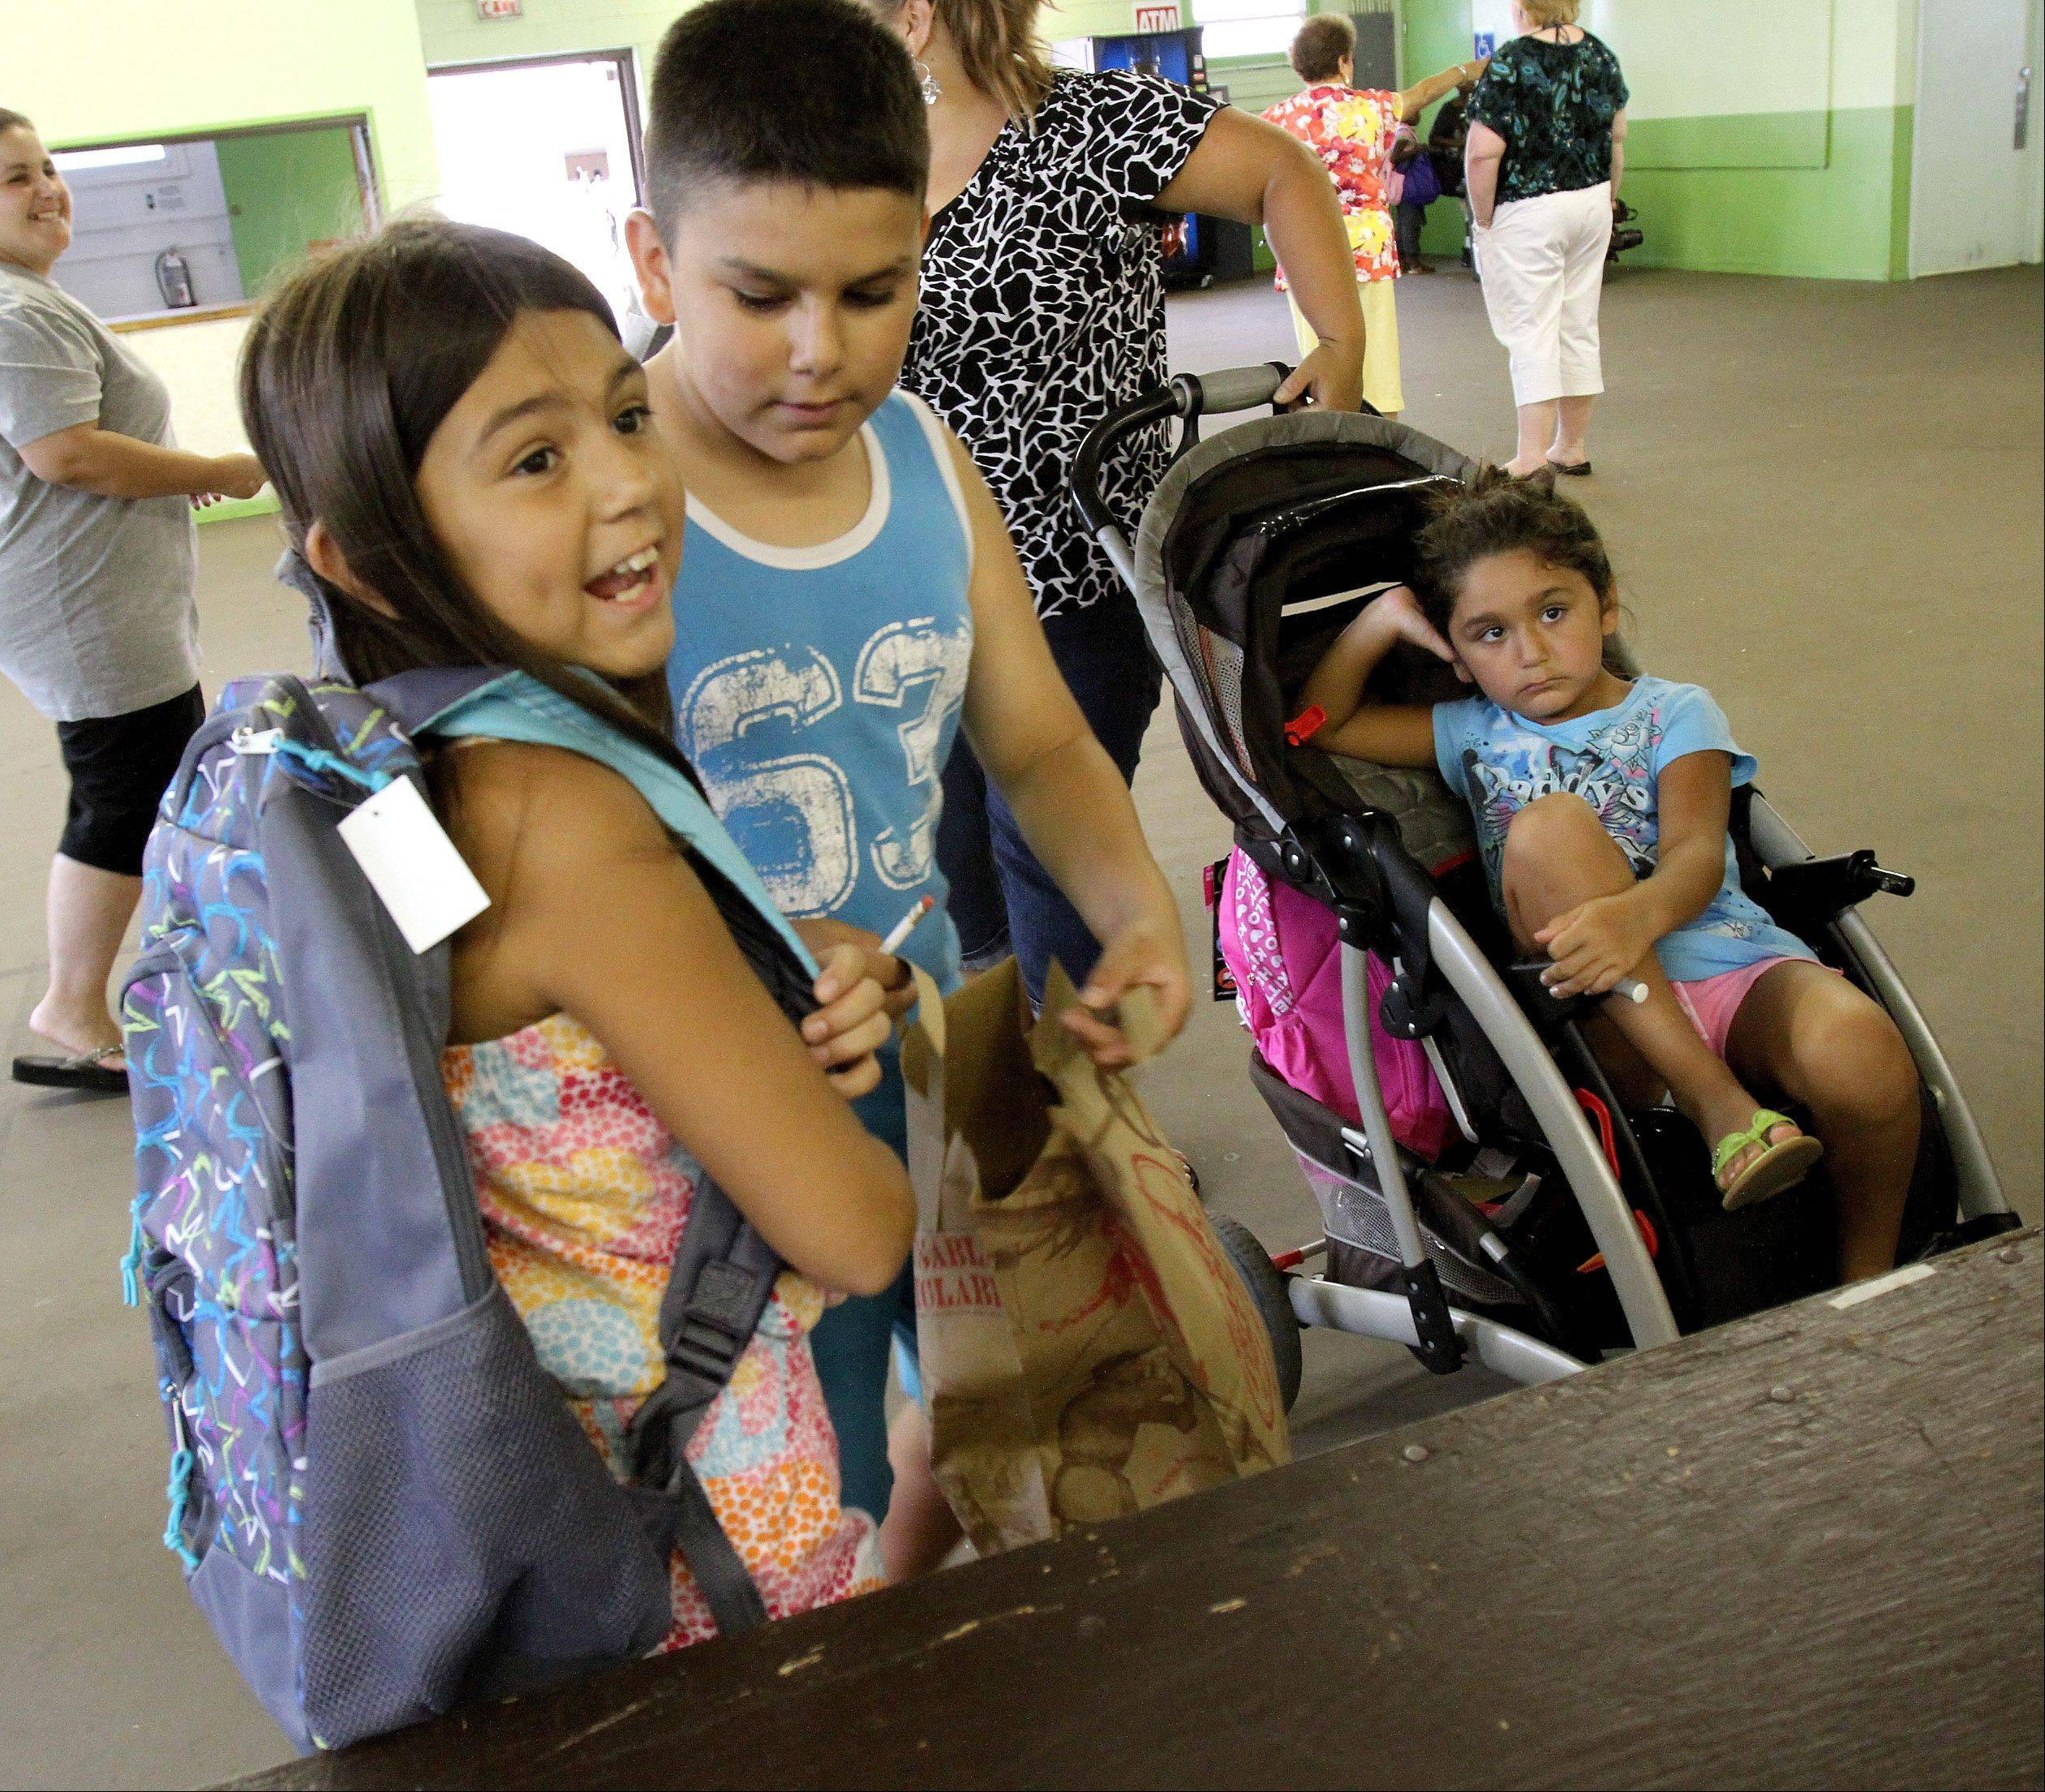 Sofia Zitlal, 9, of Wheaton, tries on her new backpack loaded with school supplies as she and her brother Ryan, sister Angelina and mom Jessical Zitlal visit the Back to School Fair in Wheaton.